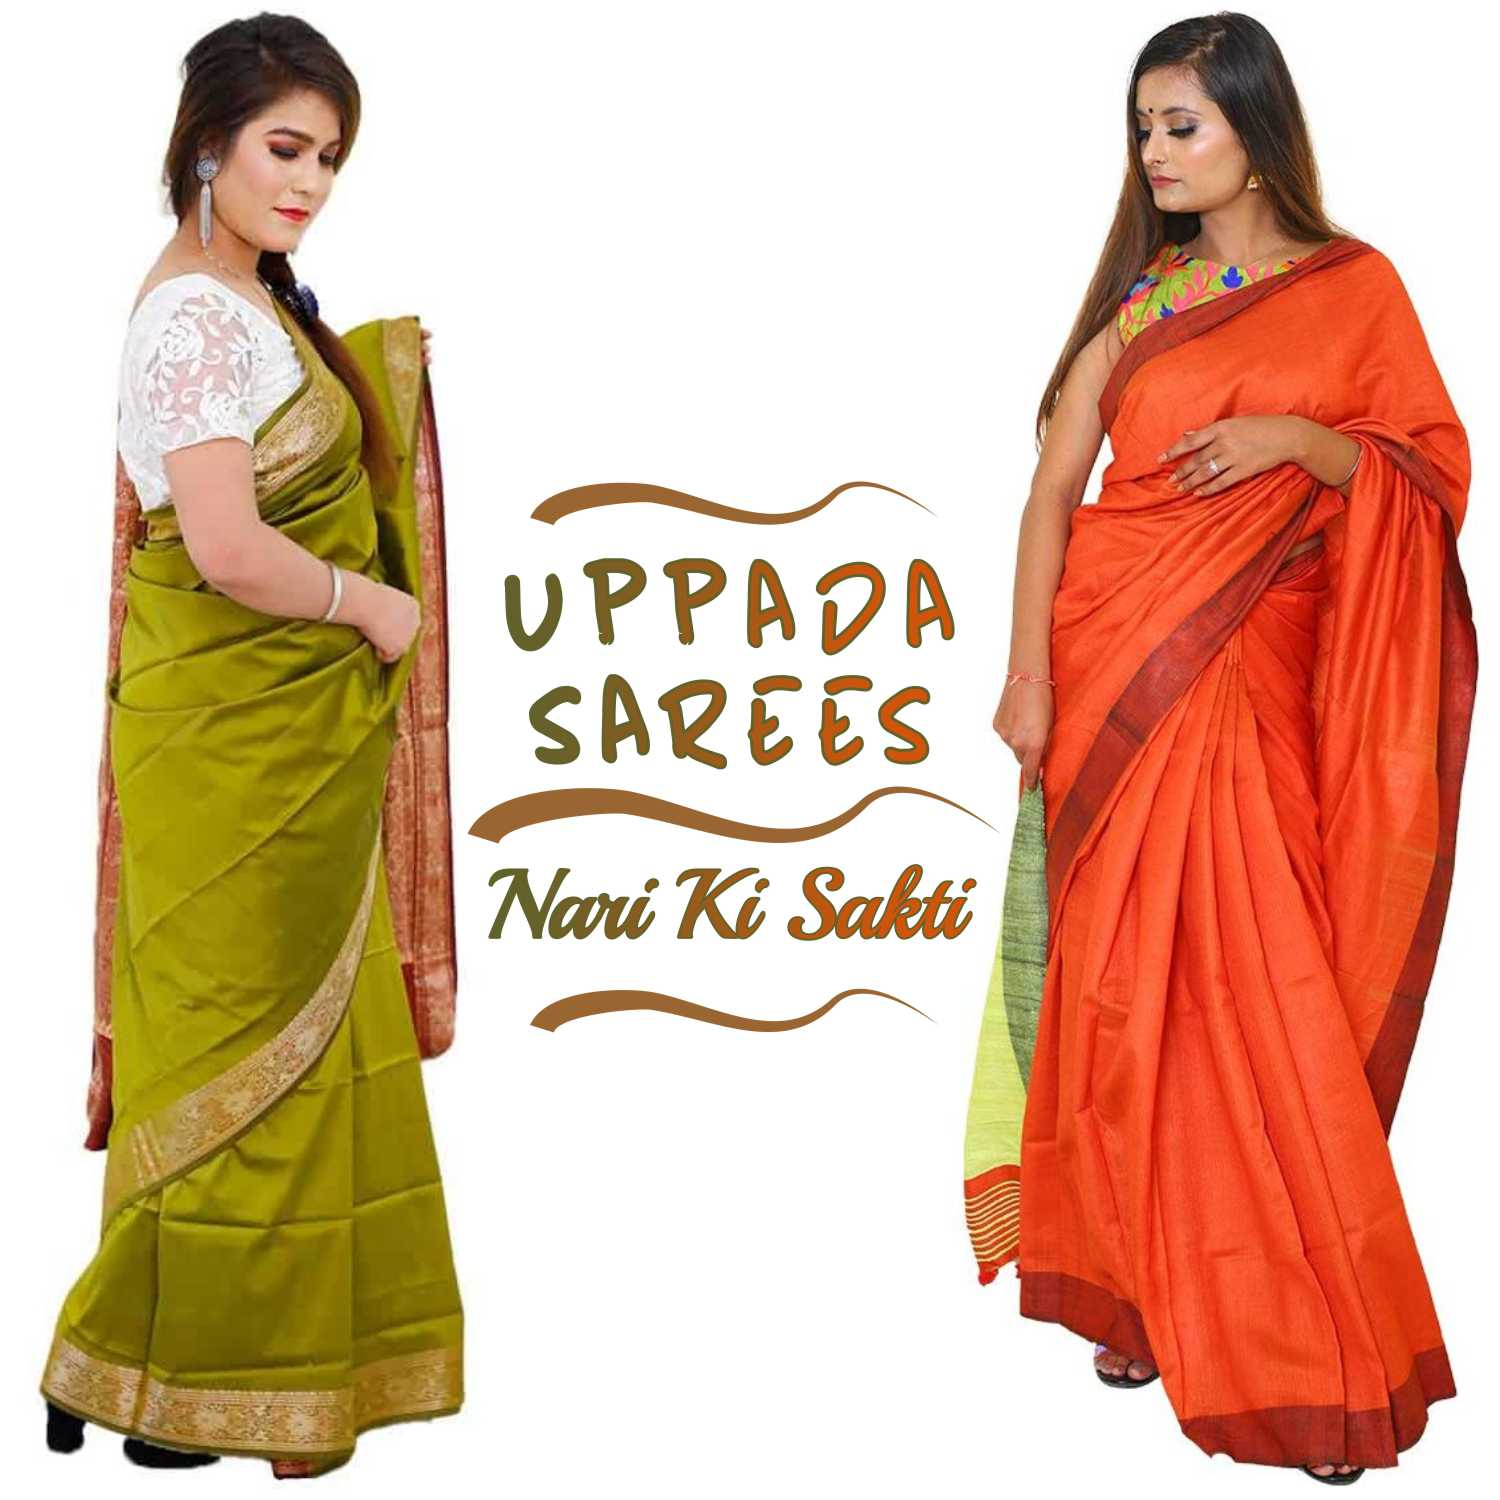 Uppada Sarees Keeping The Tradition Of Weavers Alive